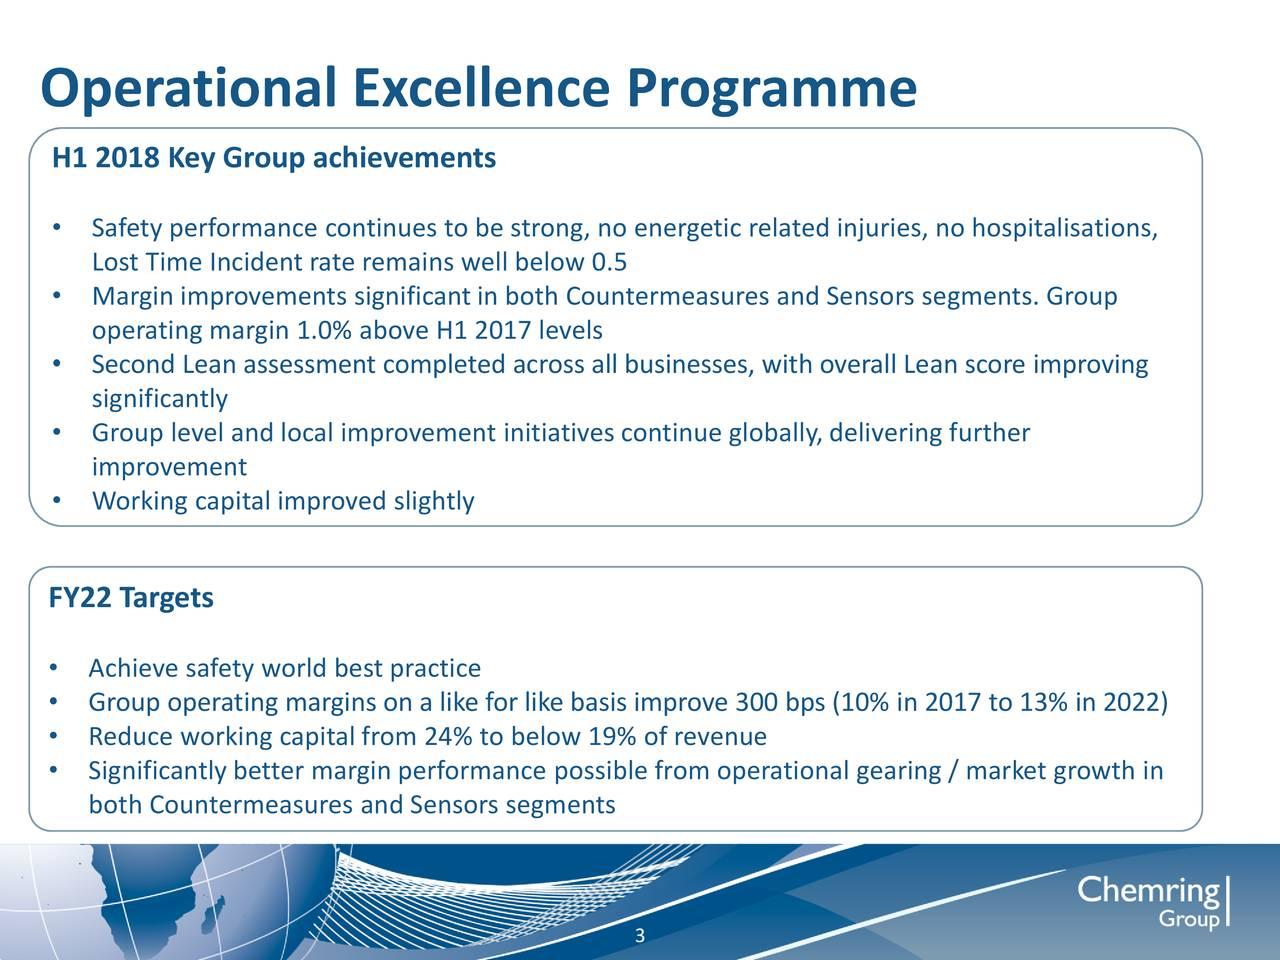 H1 2018 Key Group achievements • Safety performance continues to be strong, no energetic related injuries, no hospitalisations, Lost Time Incident rate remains well below 0.5 • Margin improvements significant in both Countermeasures and Sensors segments. Group operating margin 1.0% above H1 2017 levels • Second Lean assessment completed across all businesses, with overall Lean score improving significantly • Group level and local improvement initiatives continue globally, delivering further improvement • Working capital improved slightly FY22 Targets • Achieve safety world best practice • Group operating margins on a like for like basis improve 300 bps (10% in 2017 to 13% in 2022) • Reduce working capital from 24% to below 19% of revenue • Significantly better margin performance possible from operational gearing / market growth in both Countermeasures and Sensors segments 3